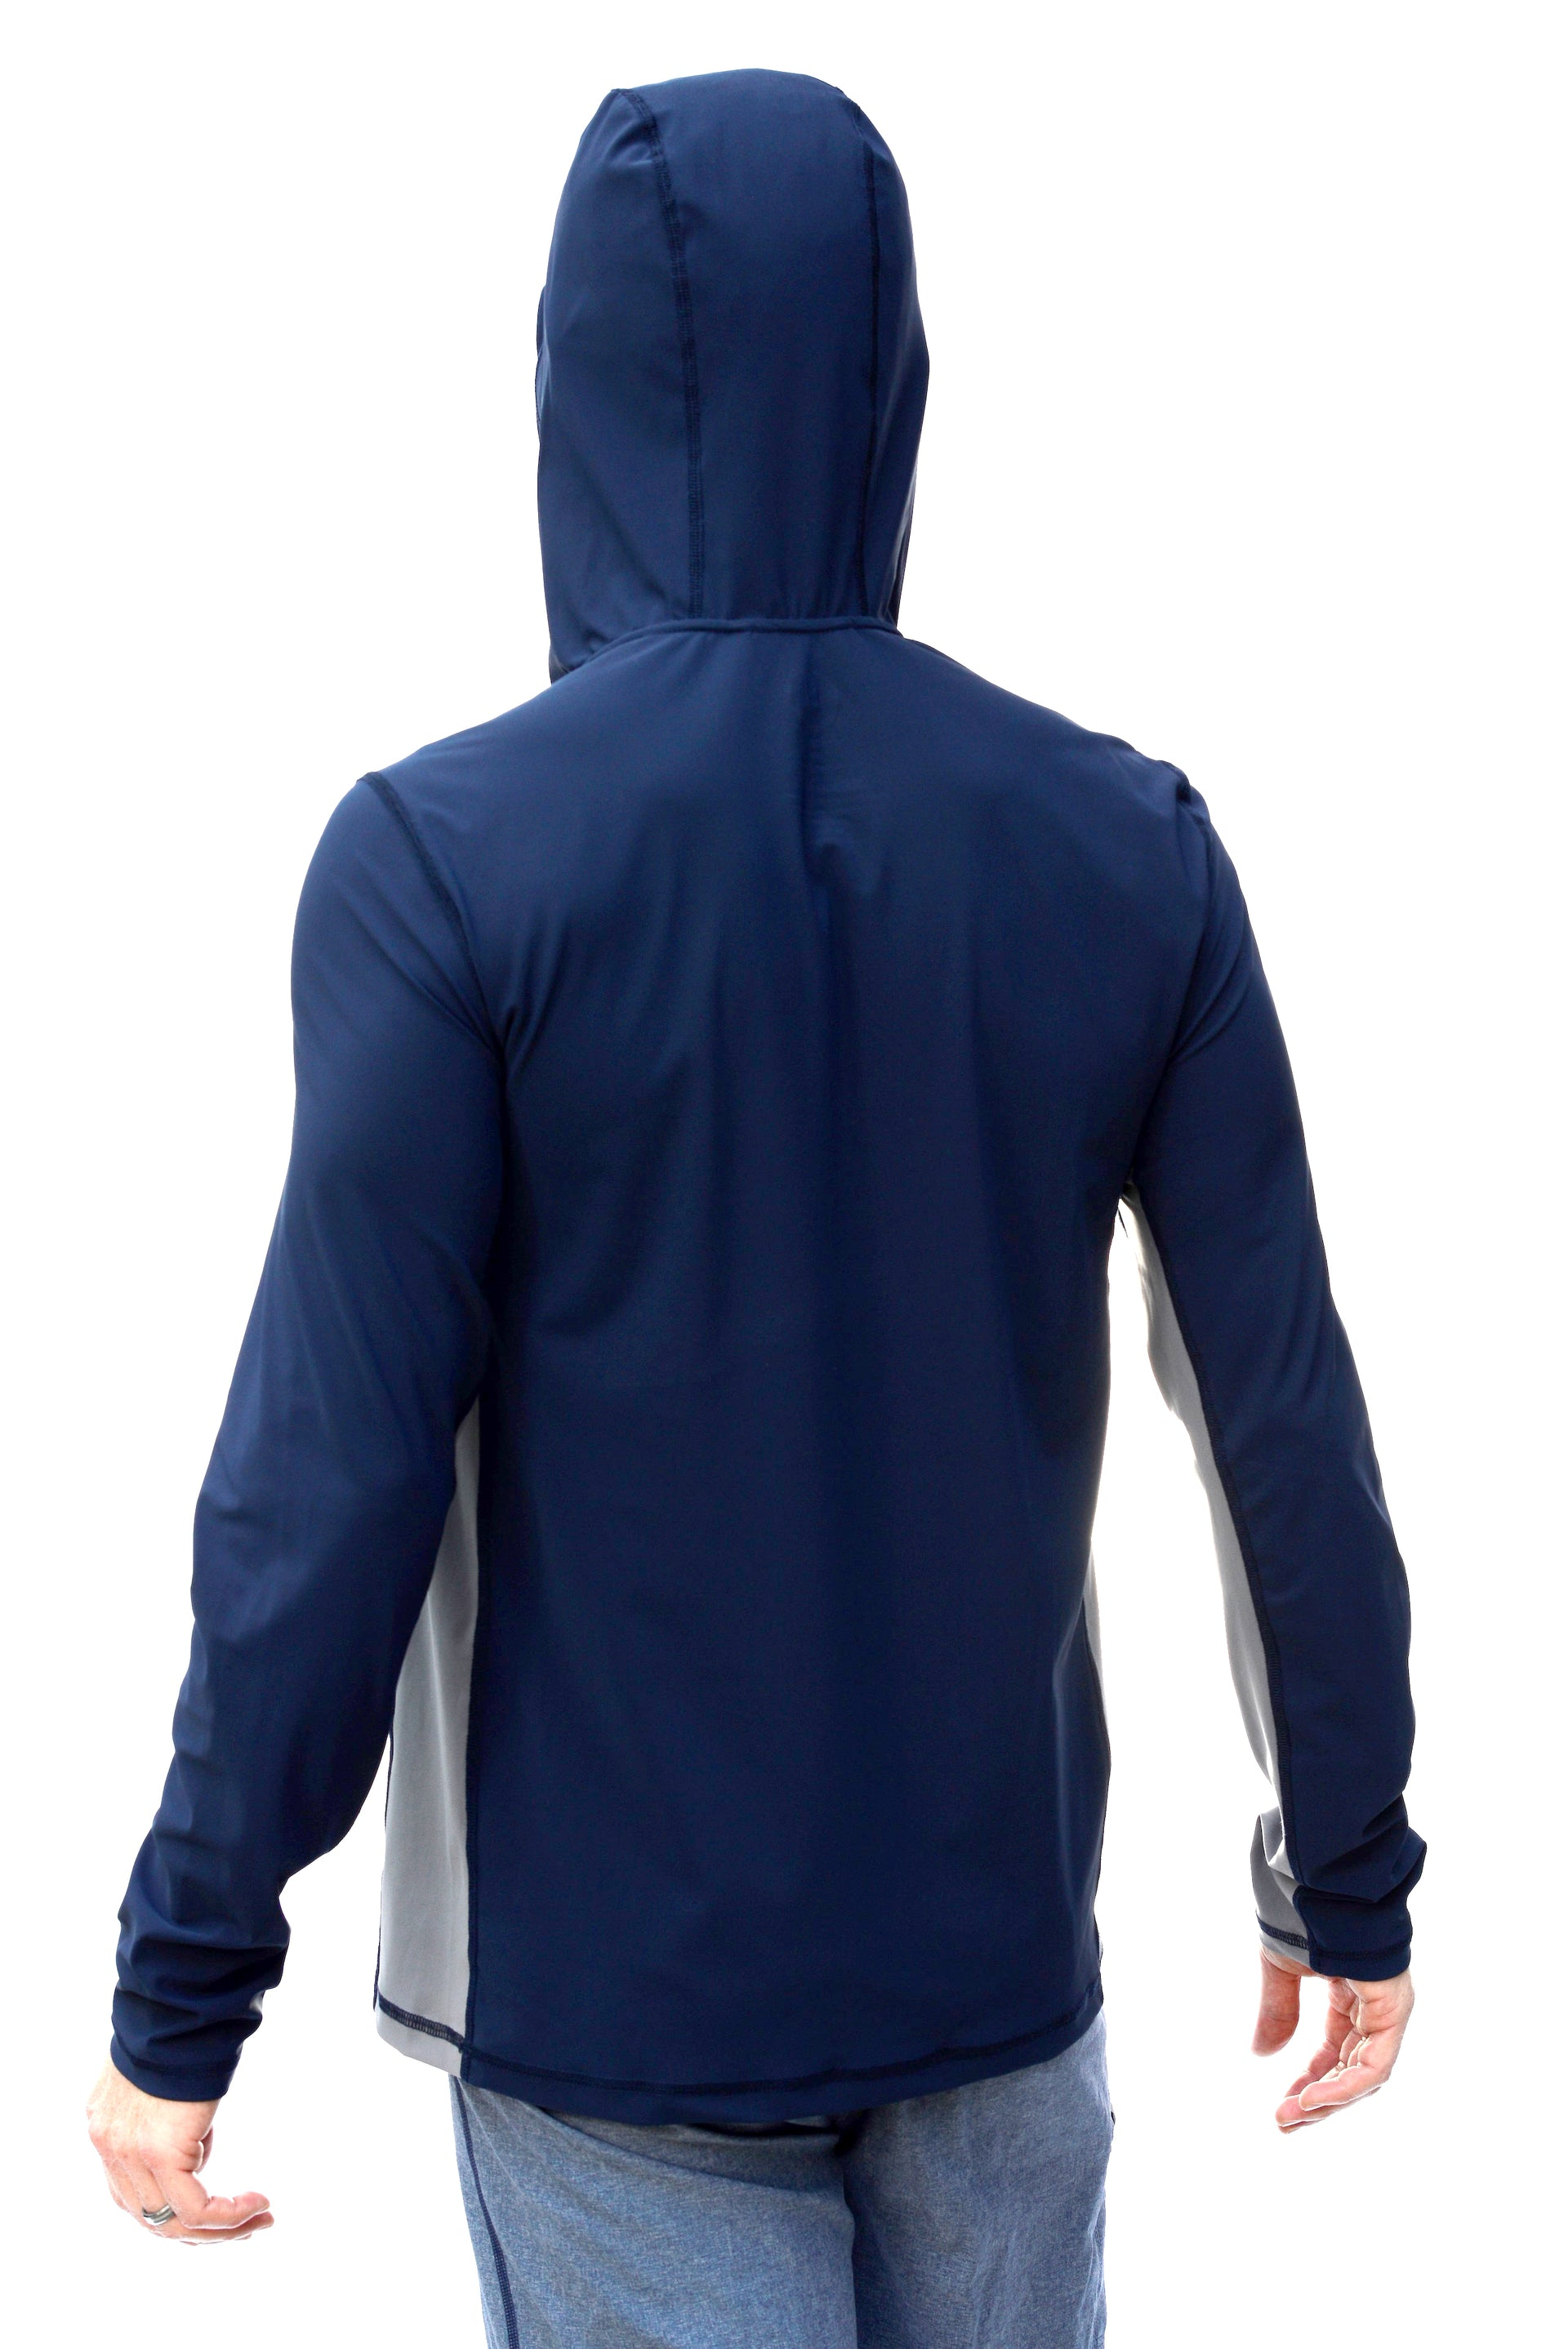 Deep Sea with Moon Rock Panel - Mens Swim Shirt / Rash Guard with a Hood